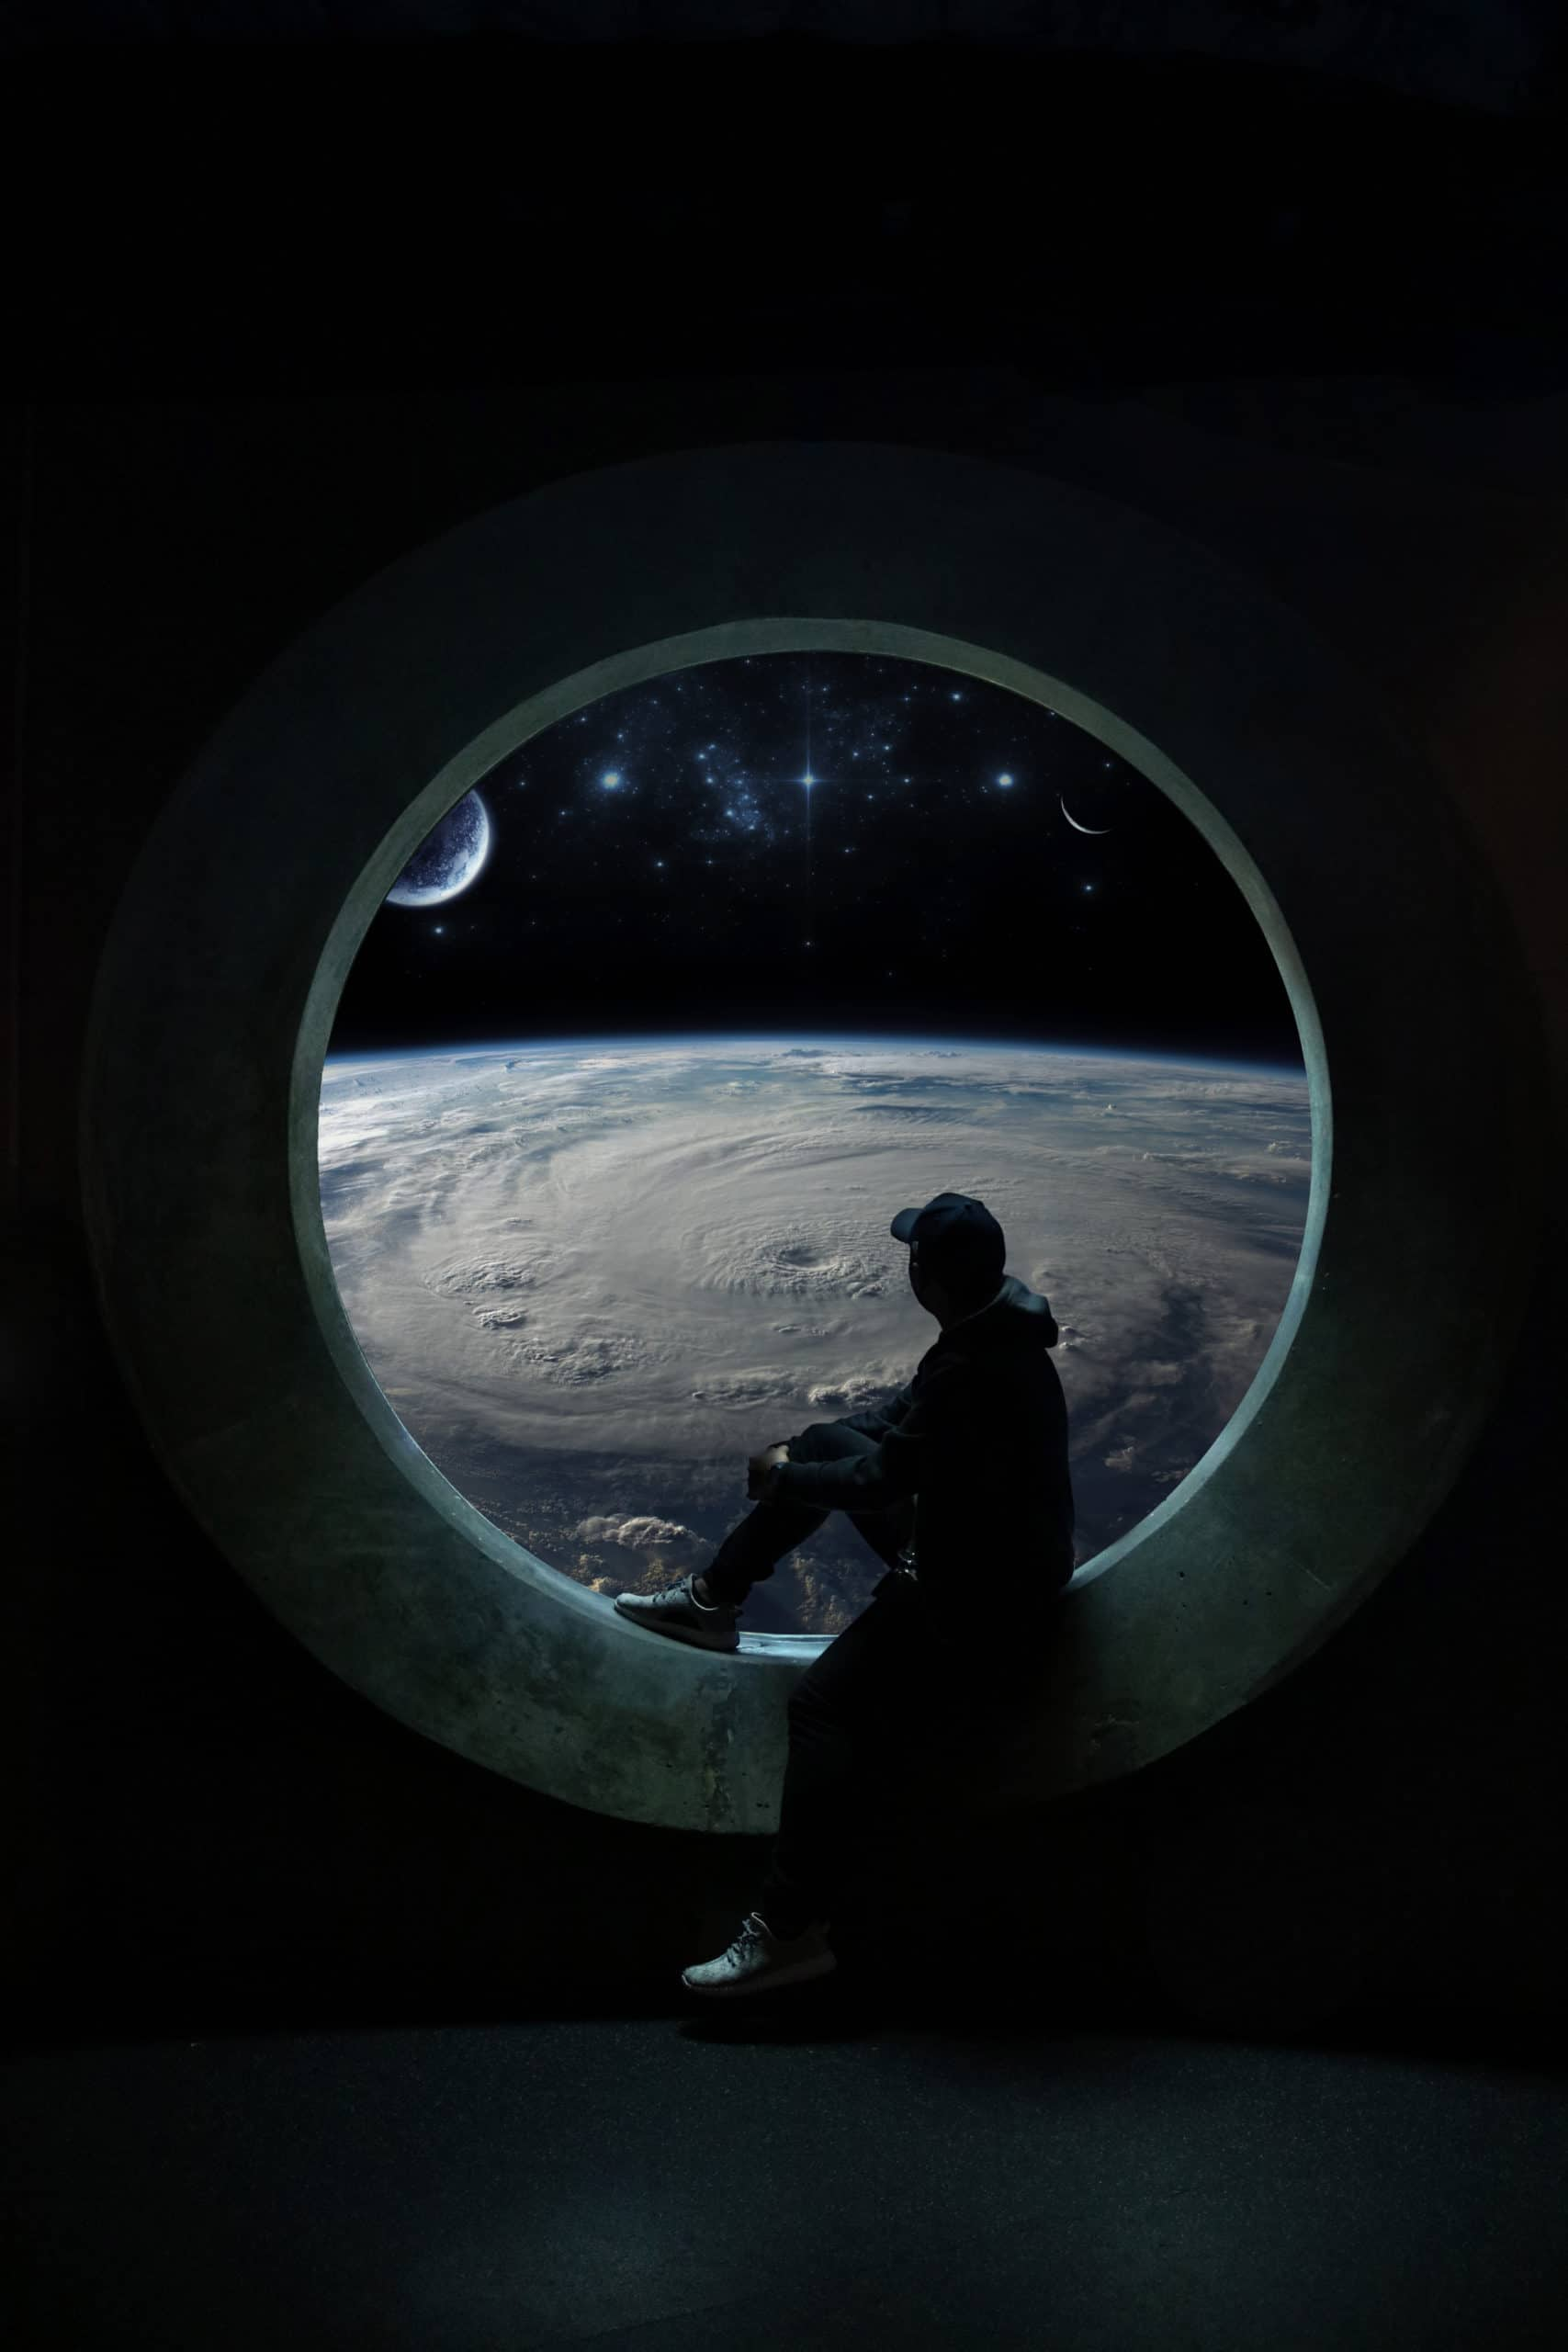 How to Create a Photo Manipulation Scene from the Other Side - A View of Earth from Space